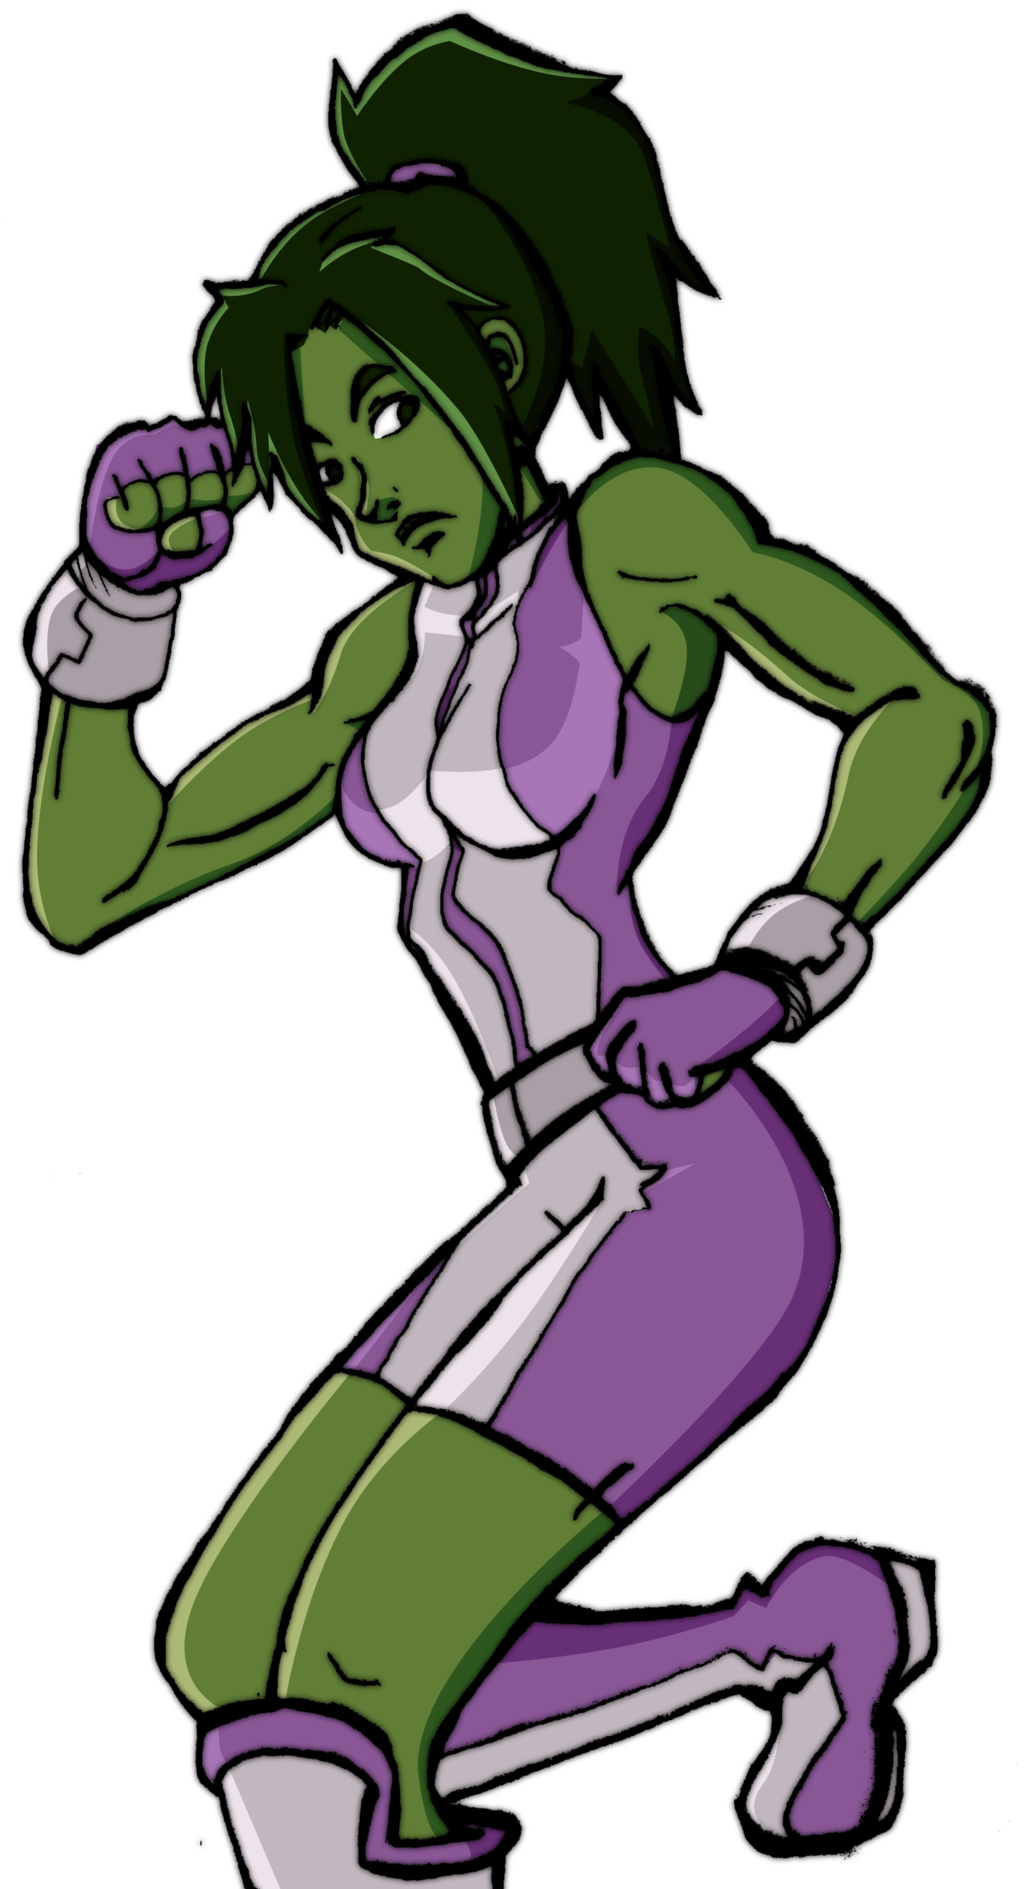 She Hulk by HaruEta She Hulk by HaruEta - She Hulk PNG